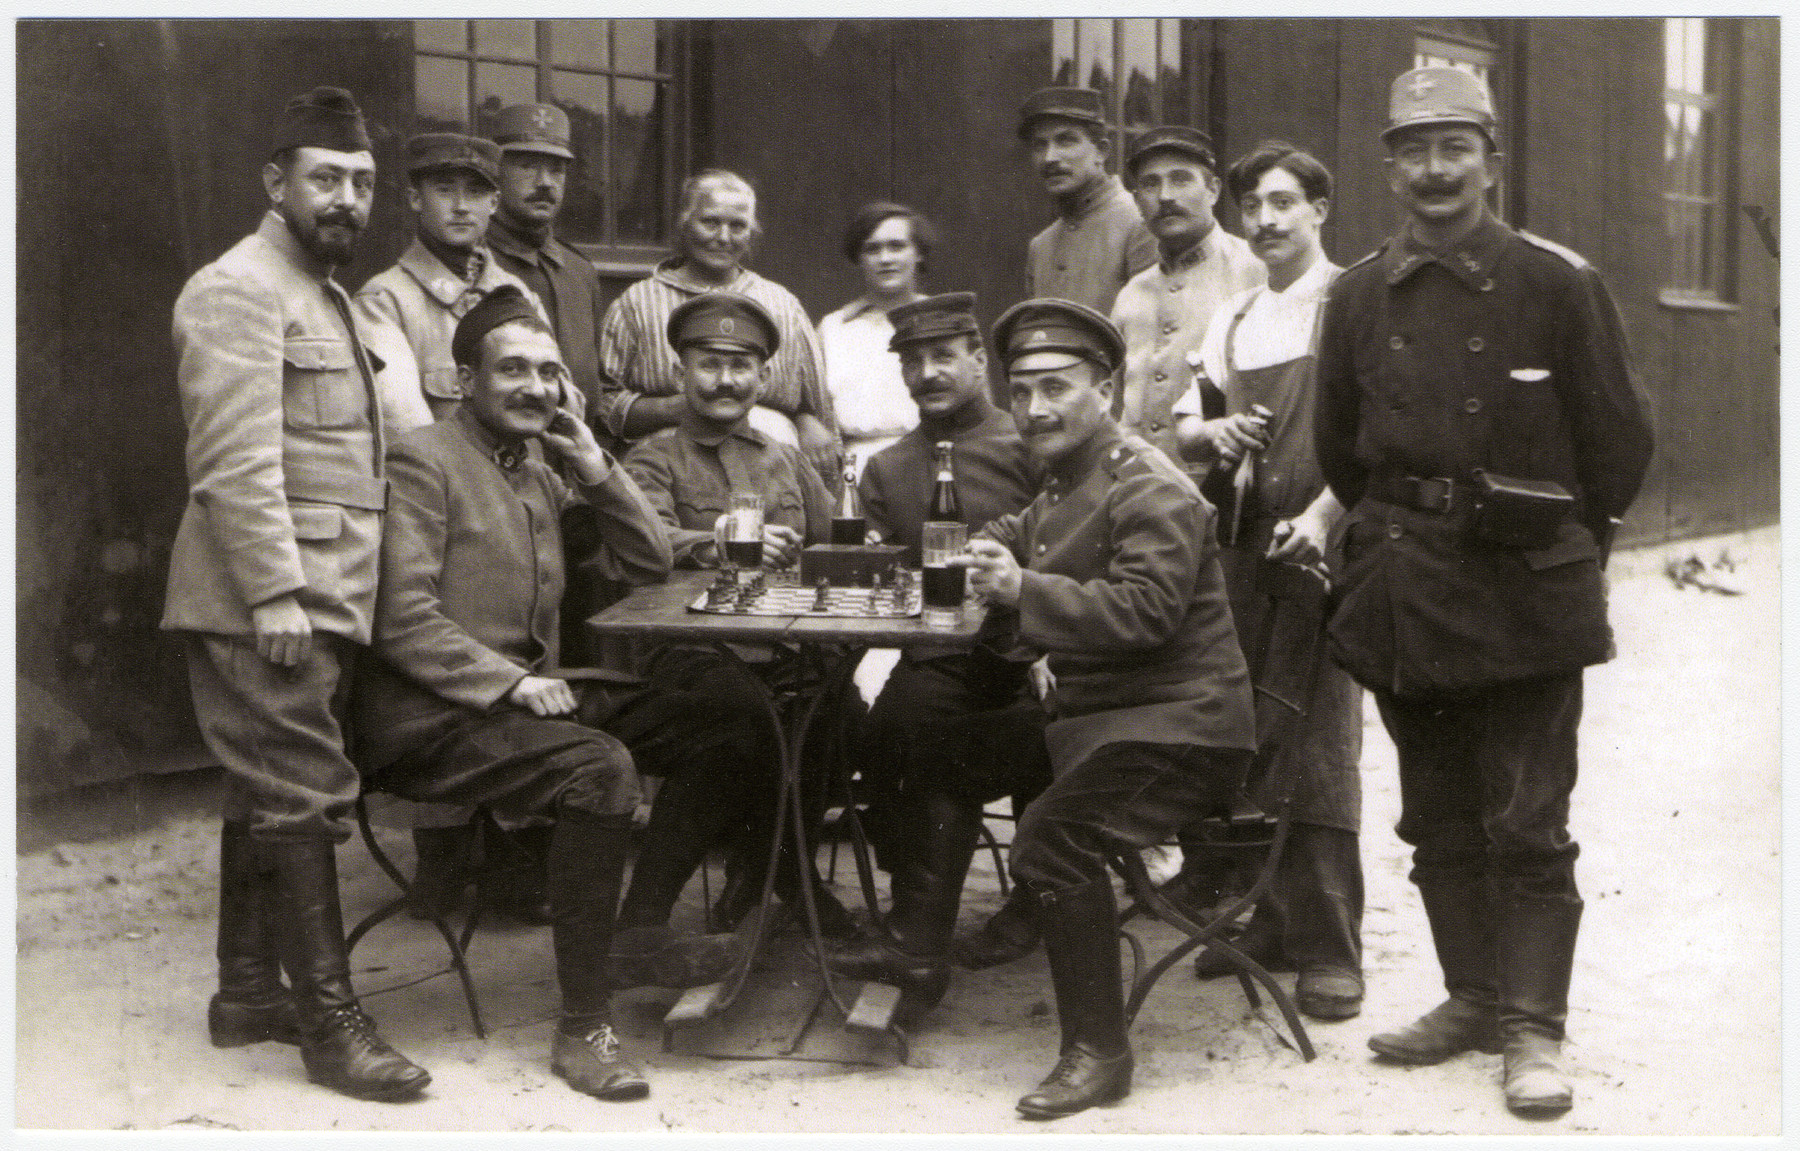 Max Hanauer stands at the far right with Russians playing chess during WWI.